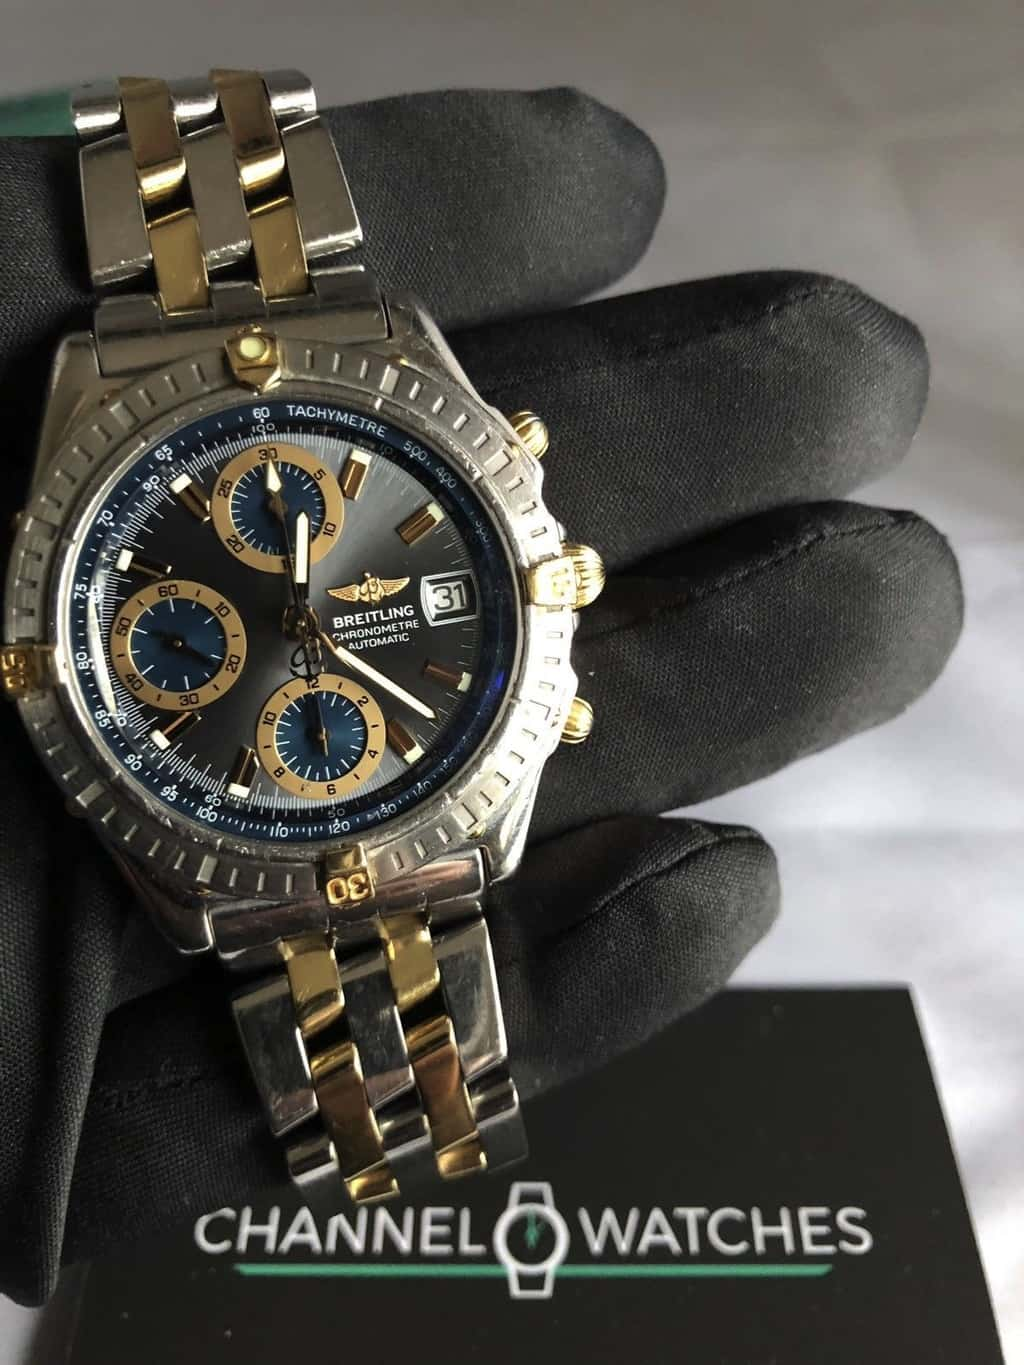 Breitling Chronomat Auto gold riders NOW SOLD